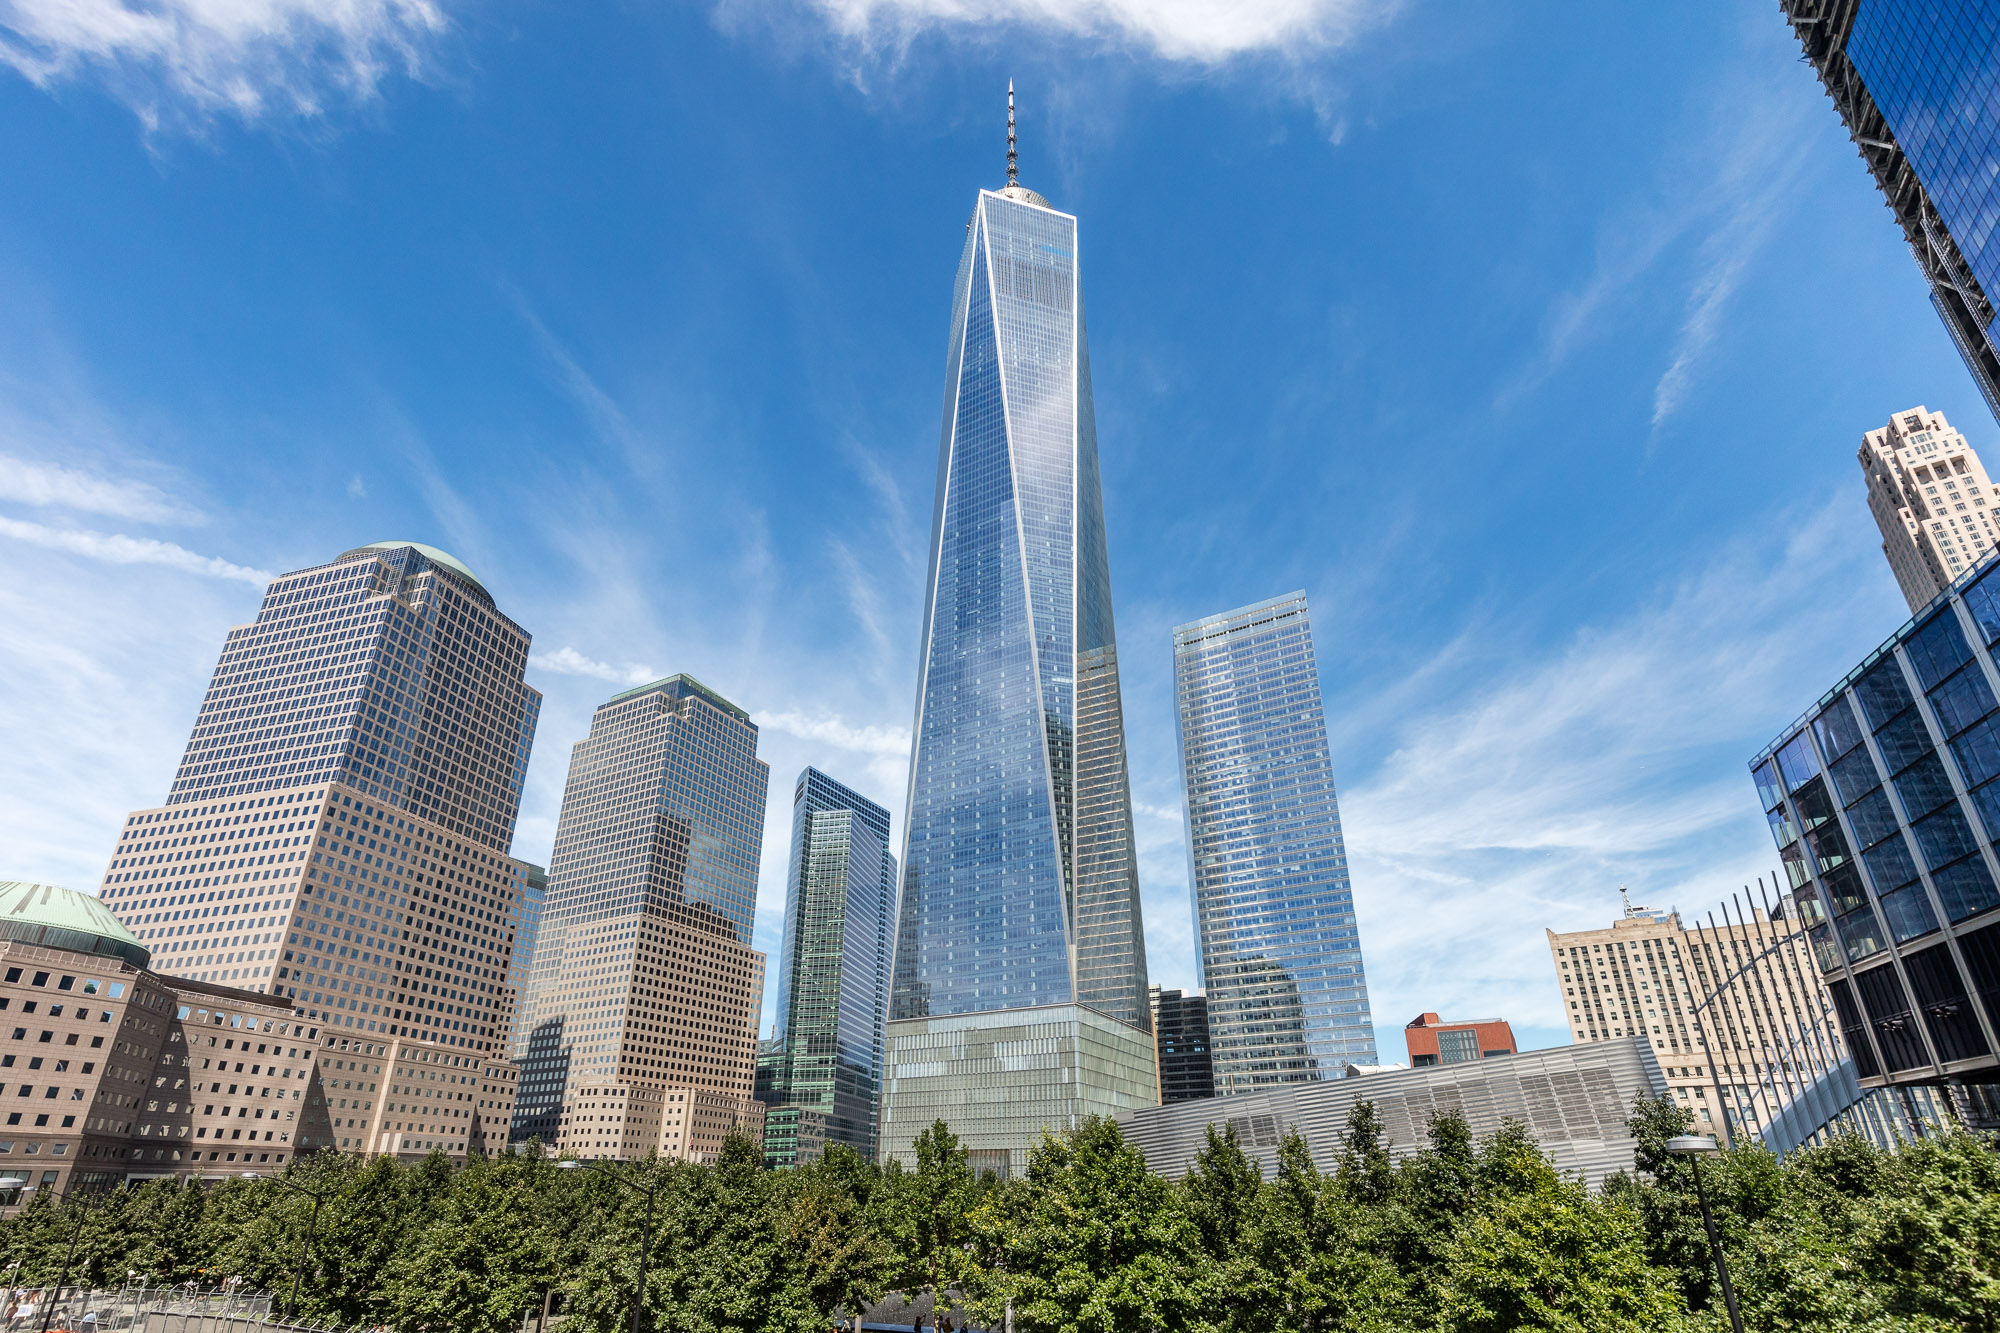 Curbed's guide to architectural tourism across the U.S.